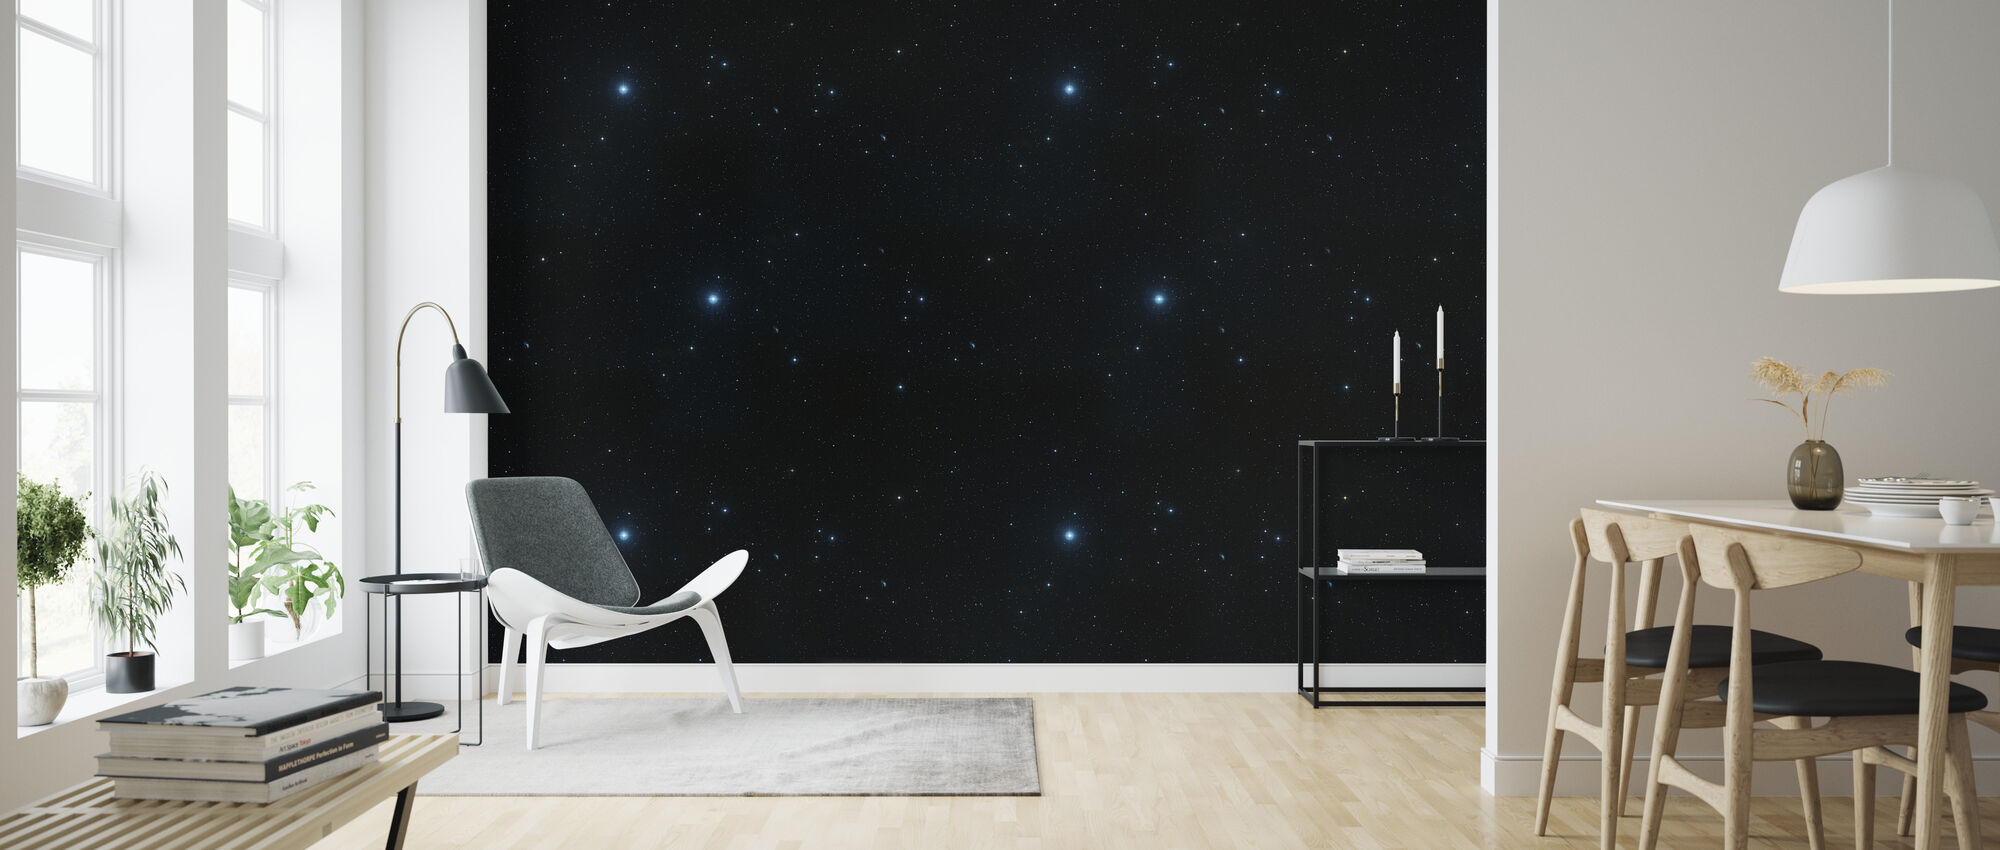 Starly - Wallpaper - Living Room